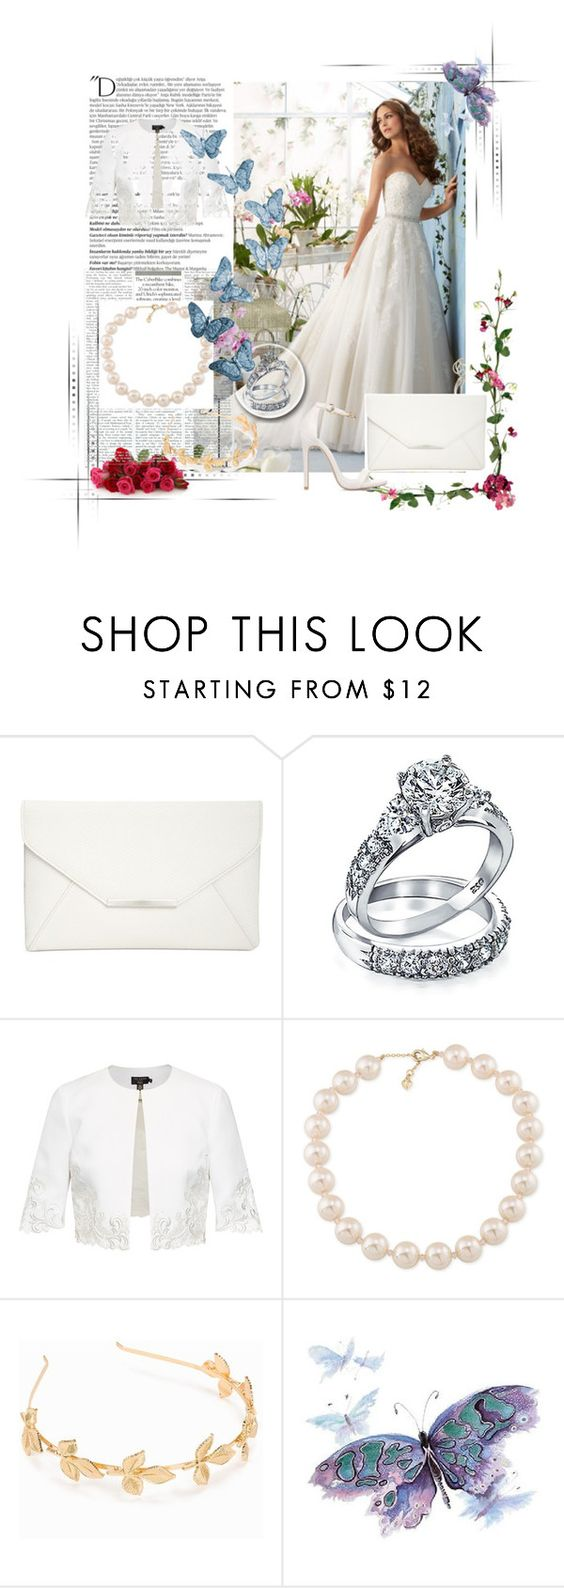 """Bez naslova #16"" by elmat ❤ liked on Polyvore featuring Style & Co., Bling Jewelry, Ted Baker, Carolee, NLY Accessories and Balmain"